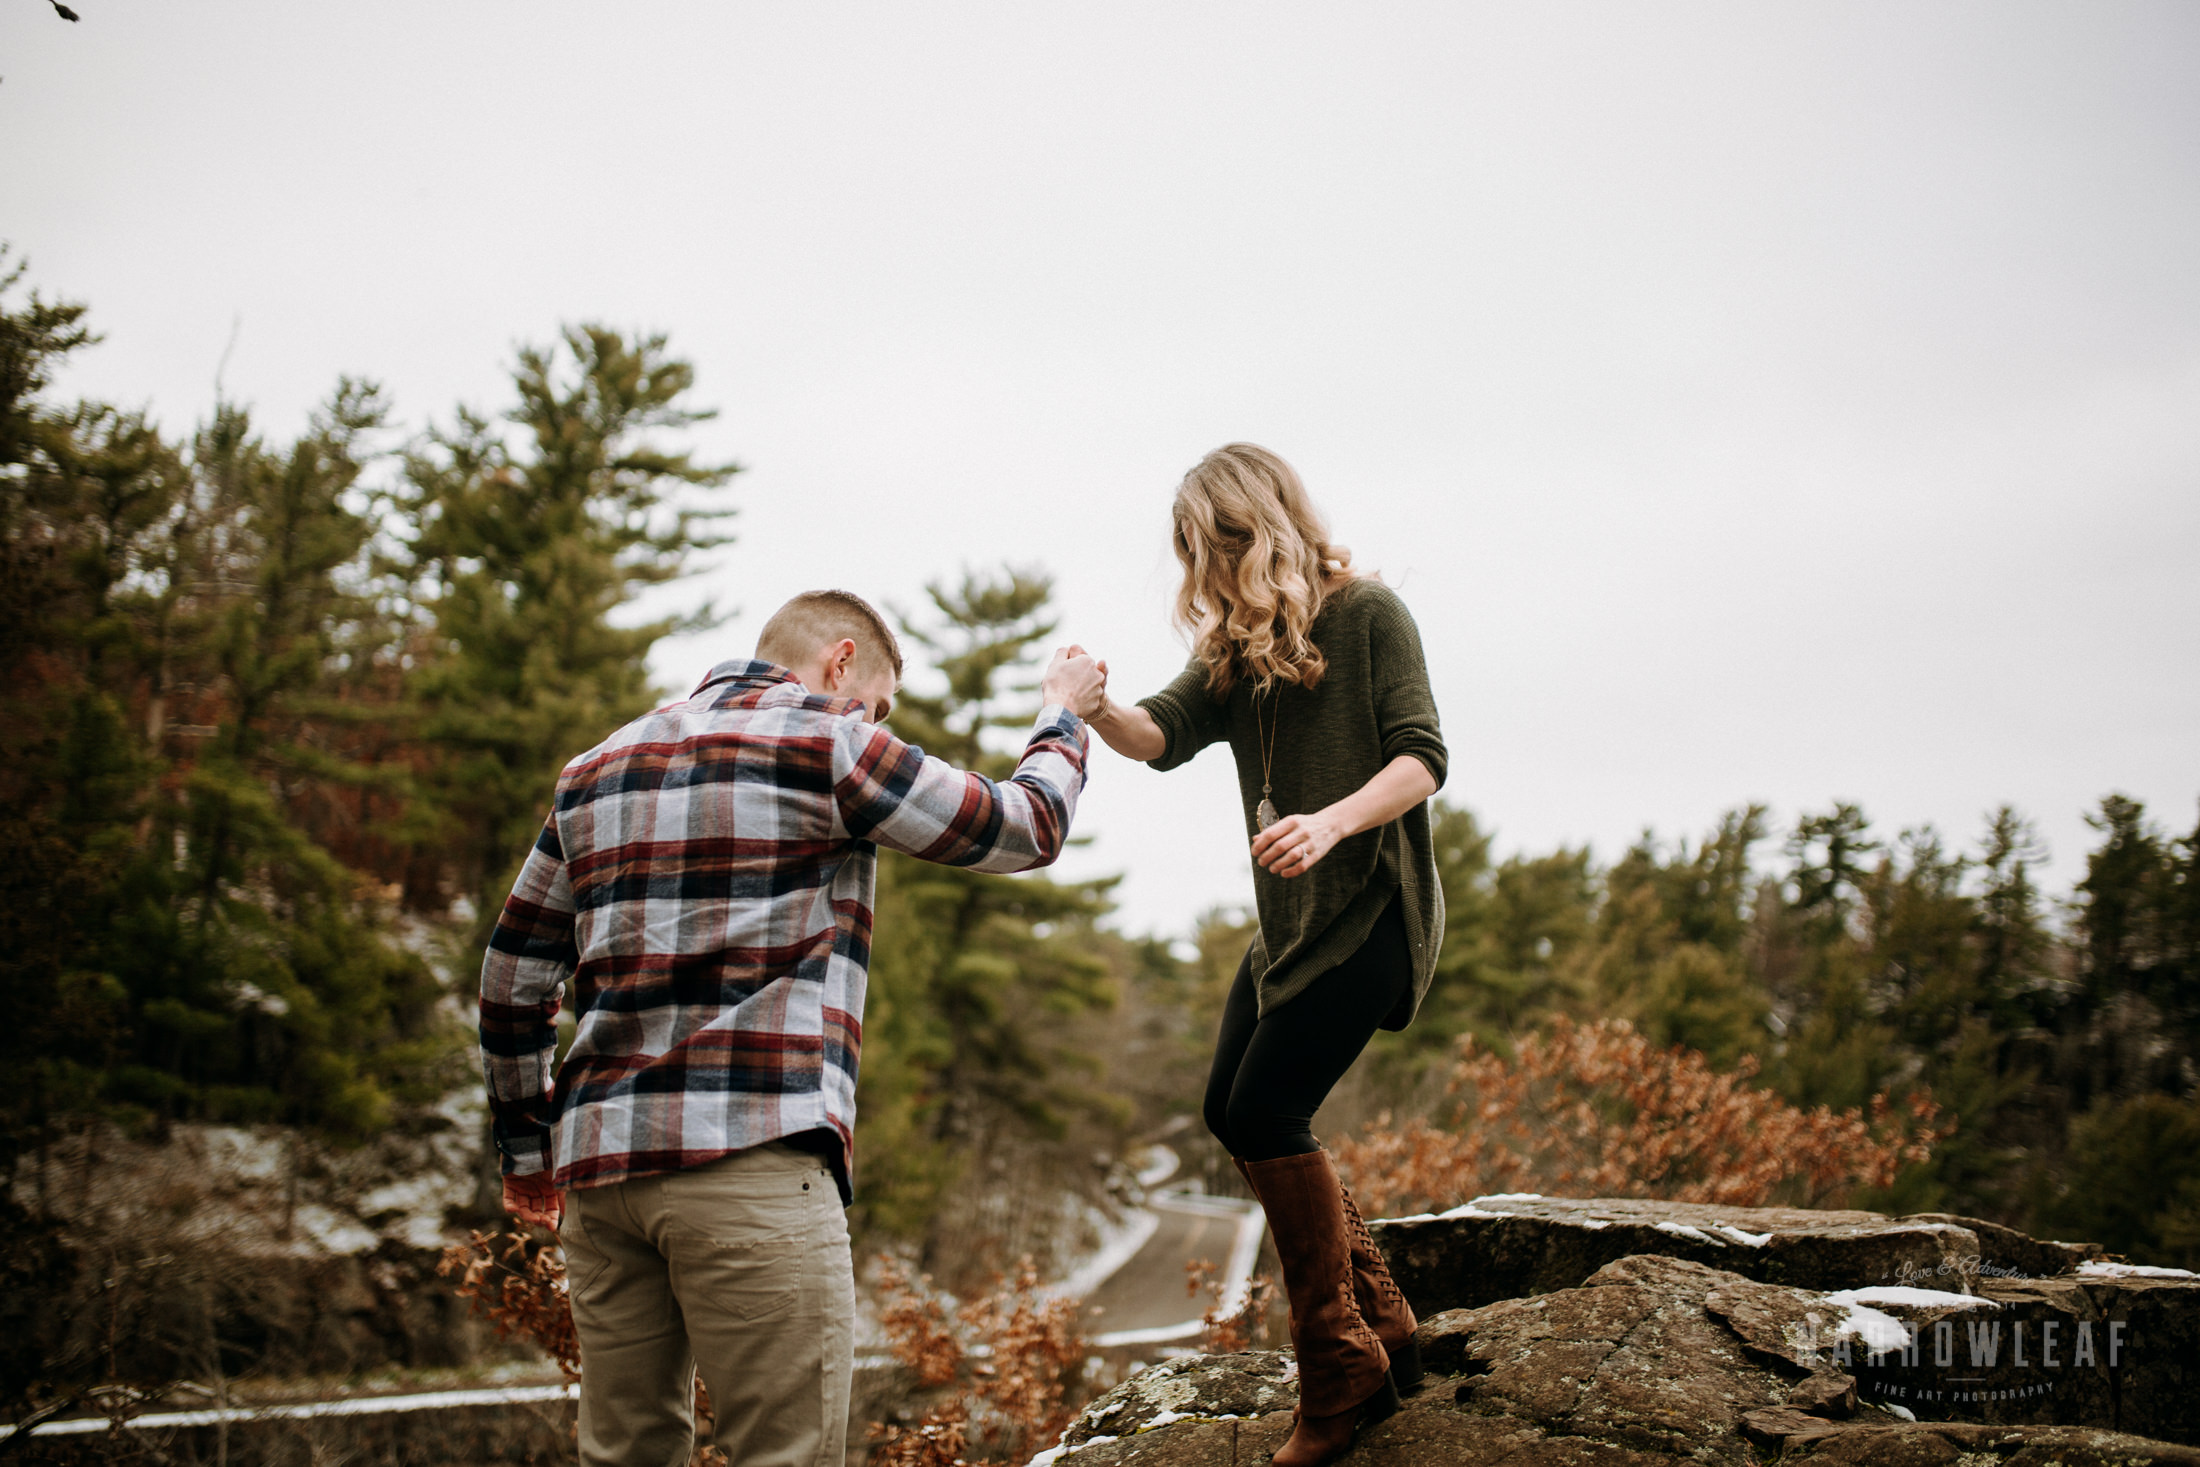 wisconsin-winter-adventure-engagement-interstate-park-bluffs-Narrowleaf_Love_and_Adventure_Photography-0016.jpg